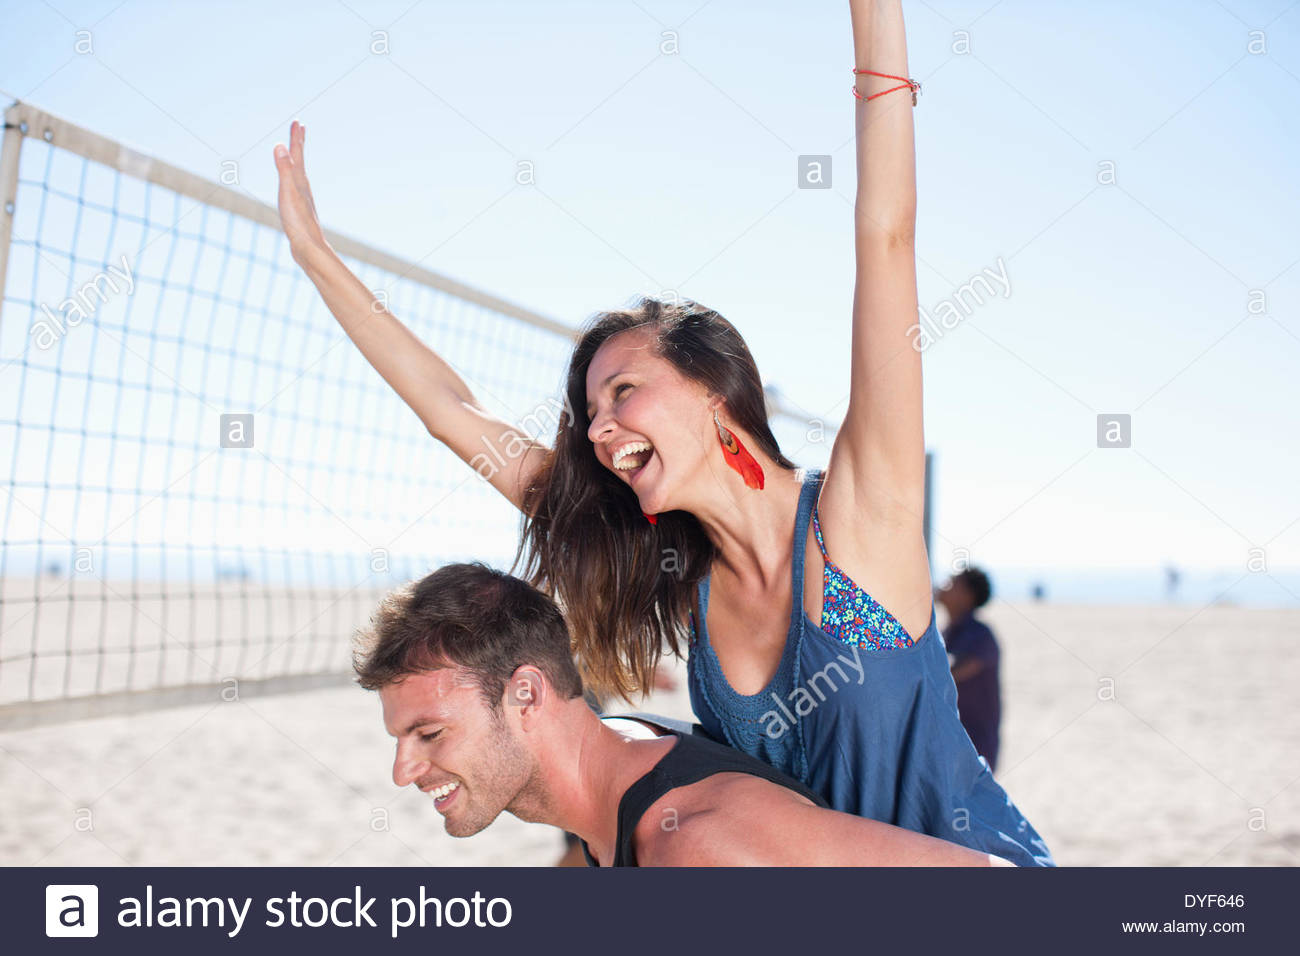 Man carrying girlfriend piggyback on beach - Stock Image